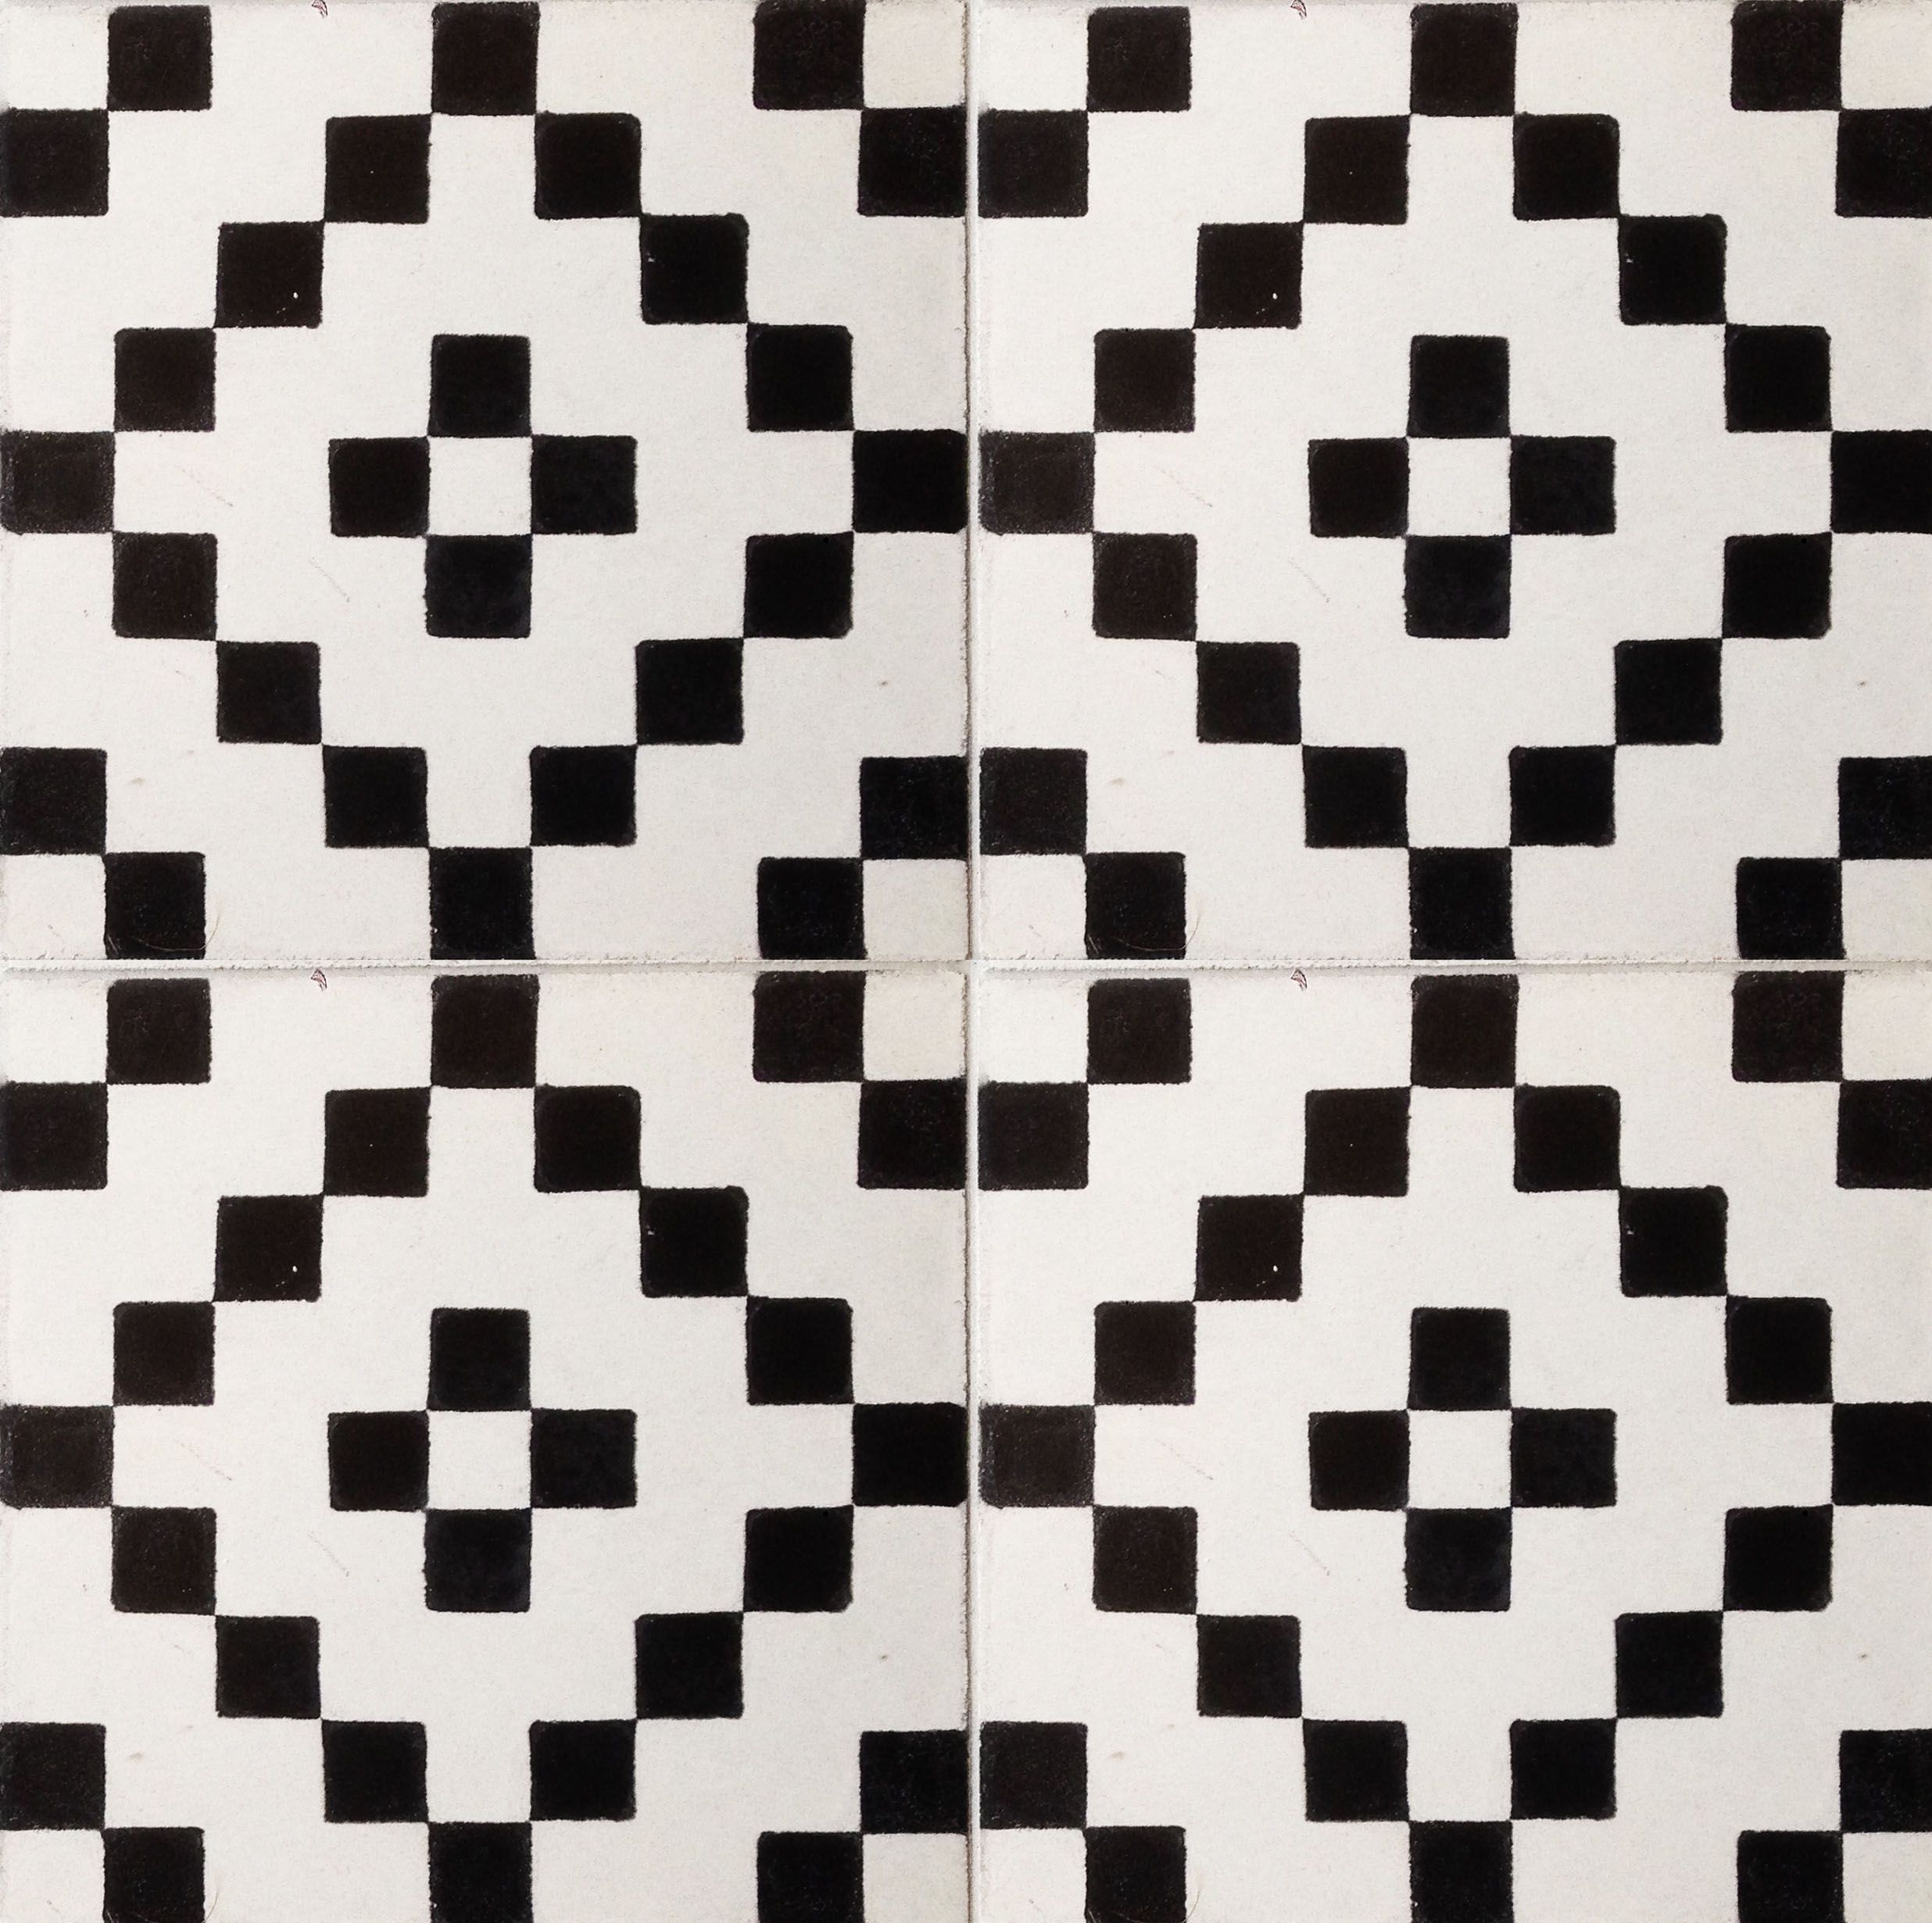 Cubit bw encaustic ceramic tiles white and black floor tile if you are looking to buy bespoke design tiles in the uk look no further than terrazzo online tile store doublecrazyfo Gallery